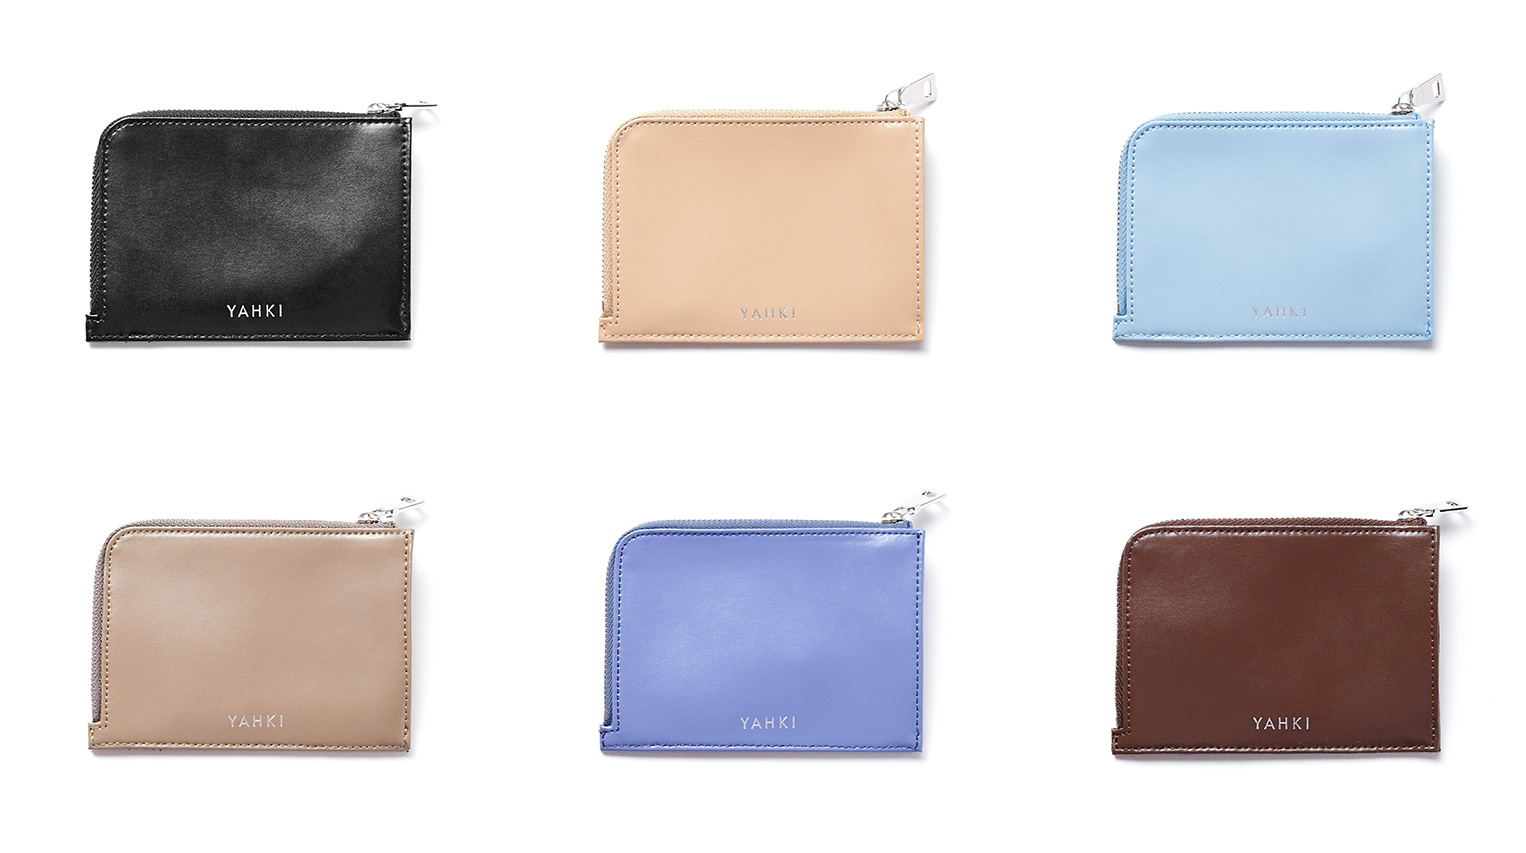 YAHKI YH-262 SMALL LEATHER GOODS カードケース